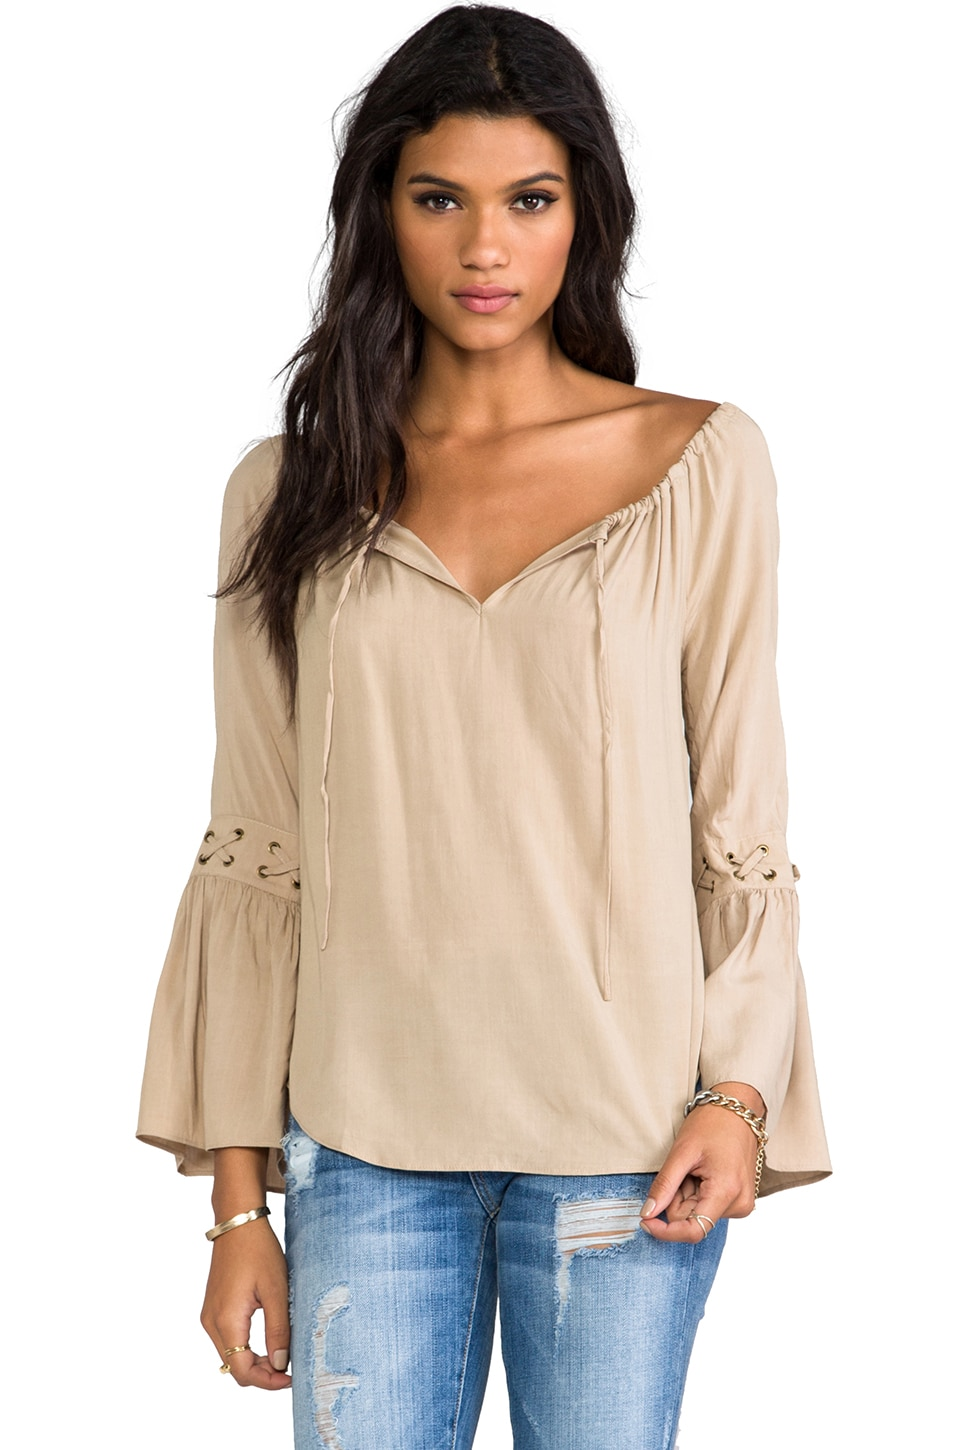 VAVA by Joy Han Gianna Top in Taupe